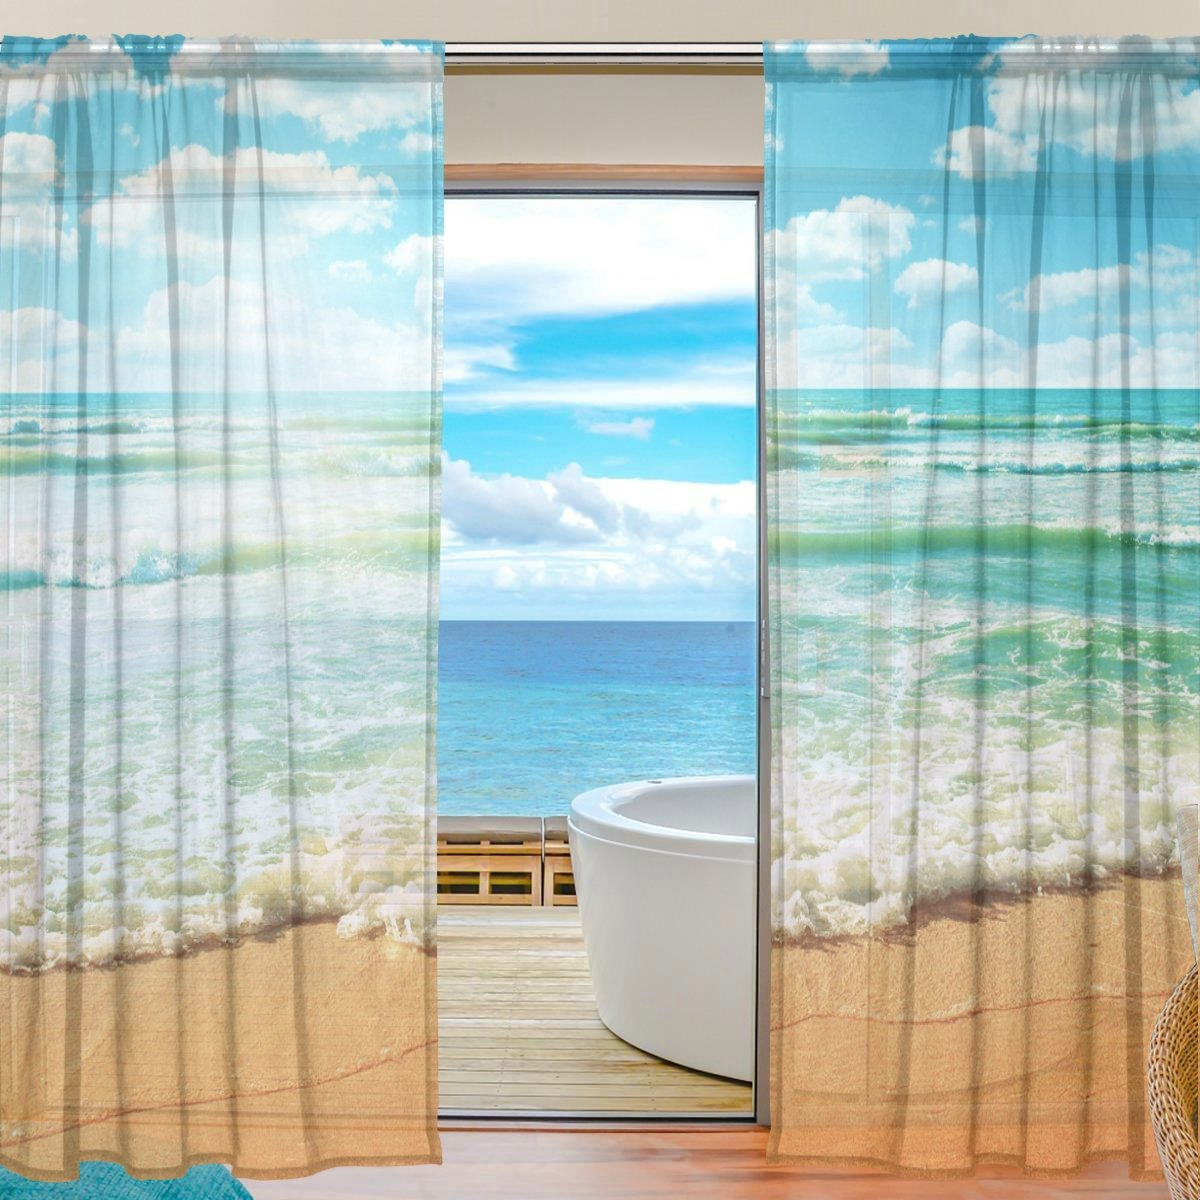 SEULIFE Window Sheer Curtain, Ocean Sea Summer Beach Theme Voile Curtain Drapes for Door Kitchen Living Room Bedroom 55x78 inches 2 Panels g3912212p113c127s169